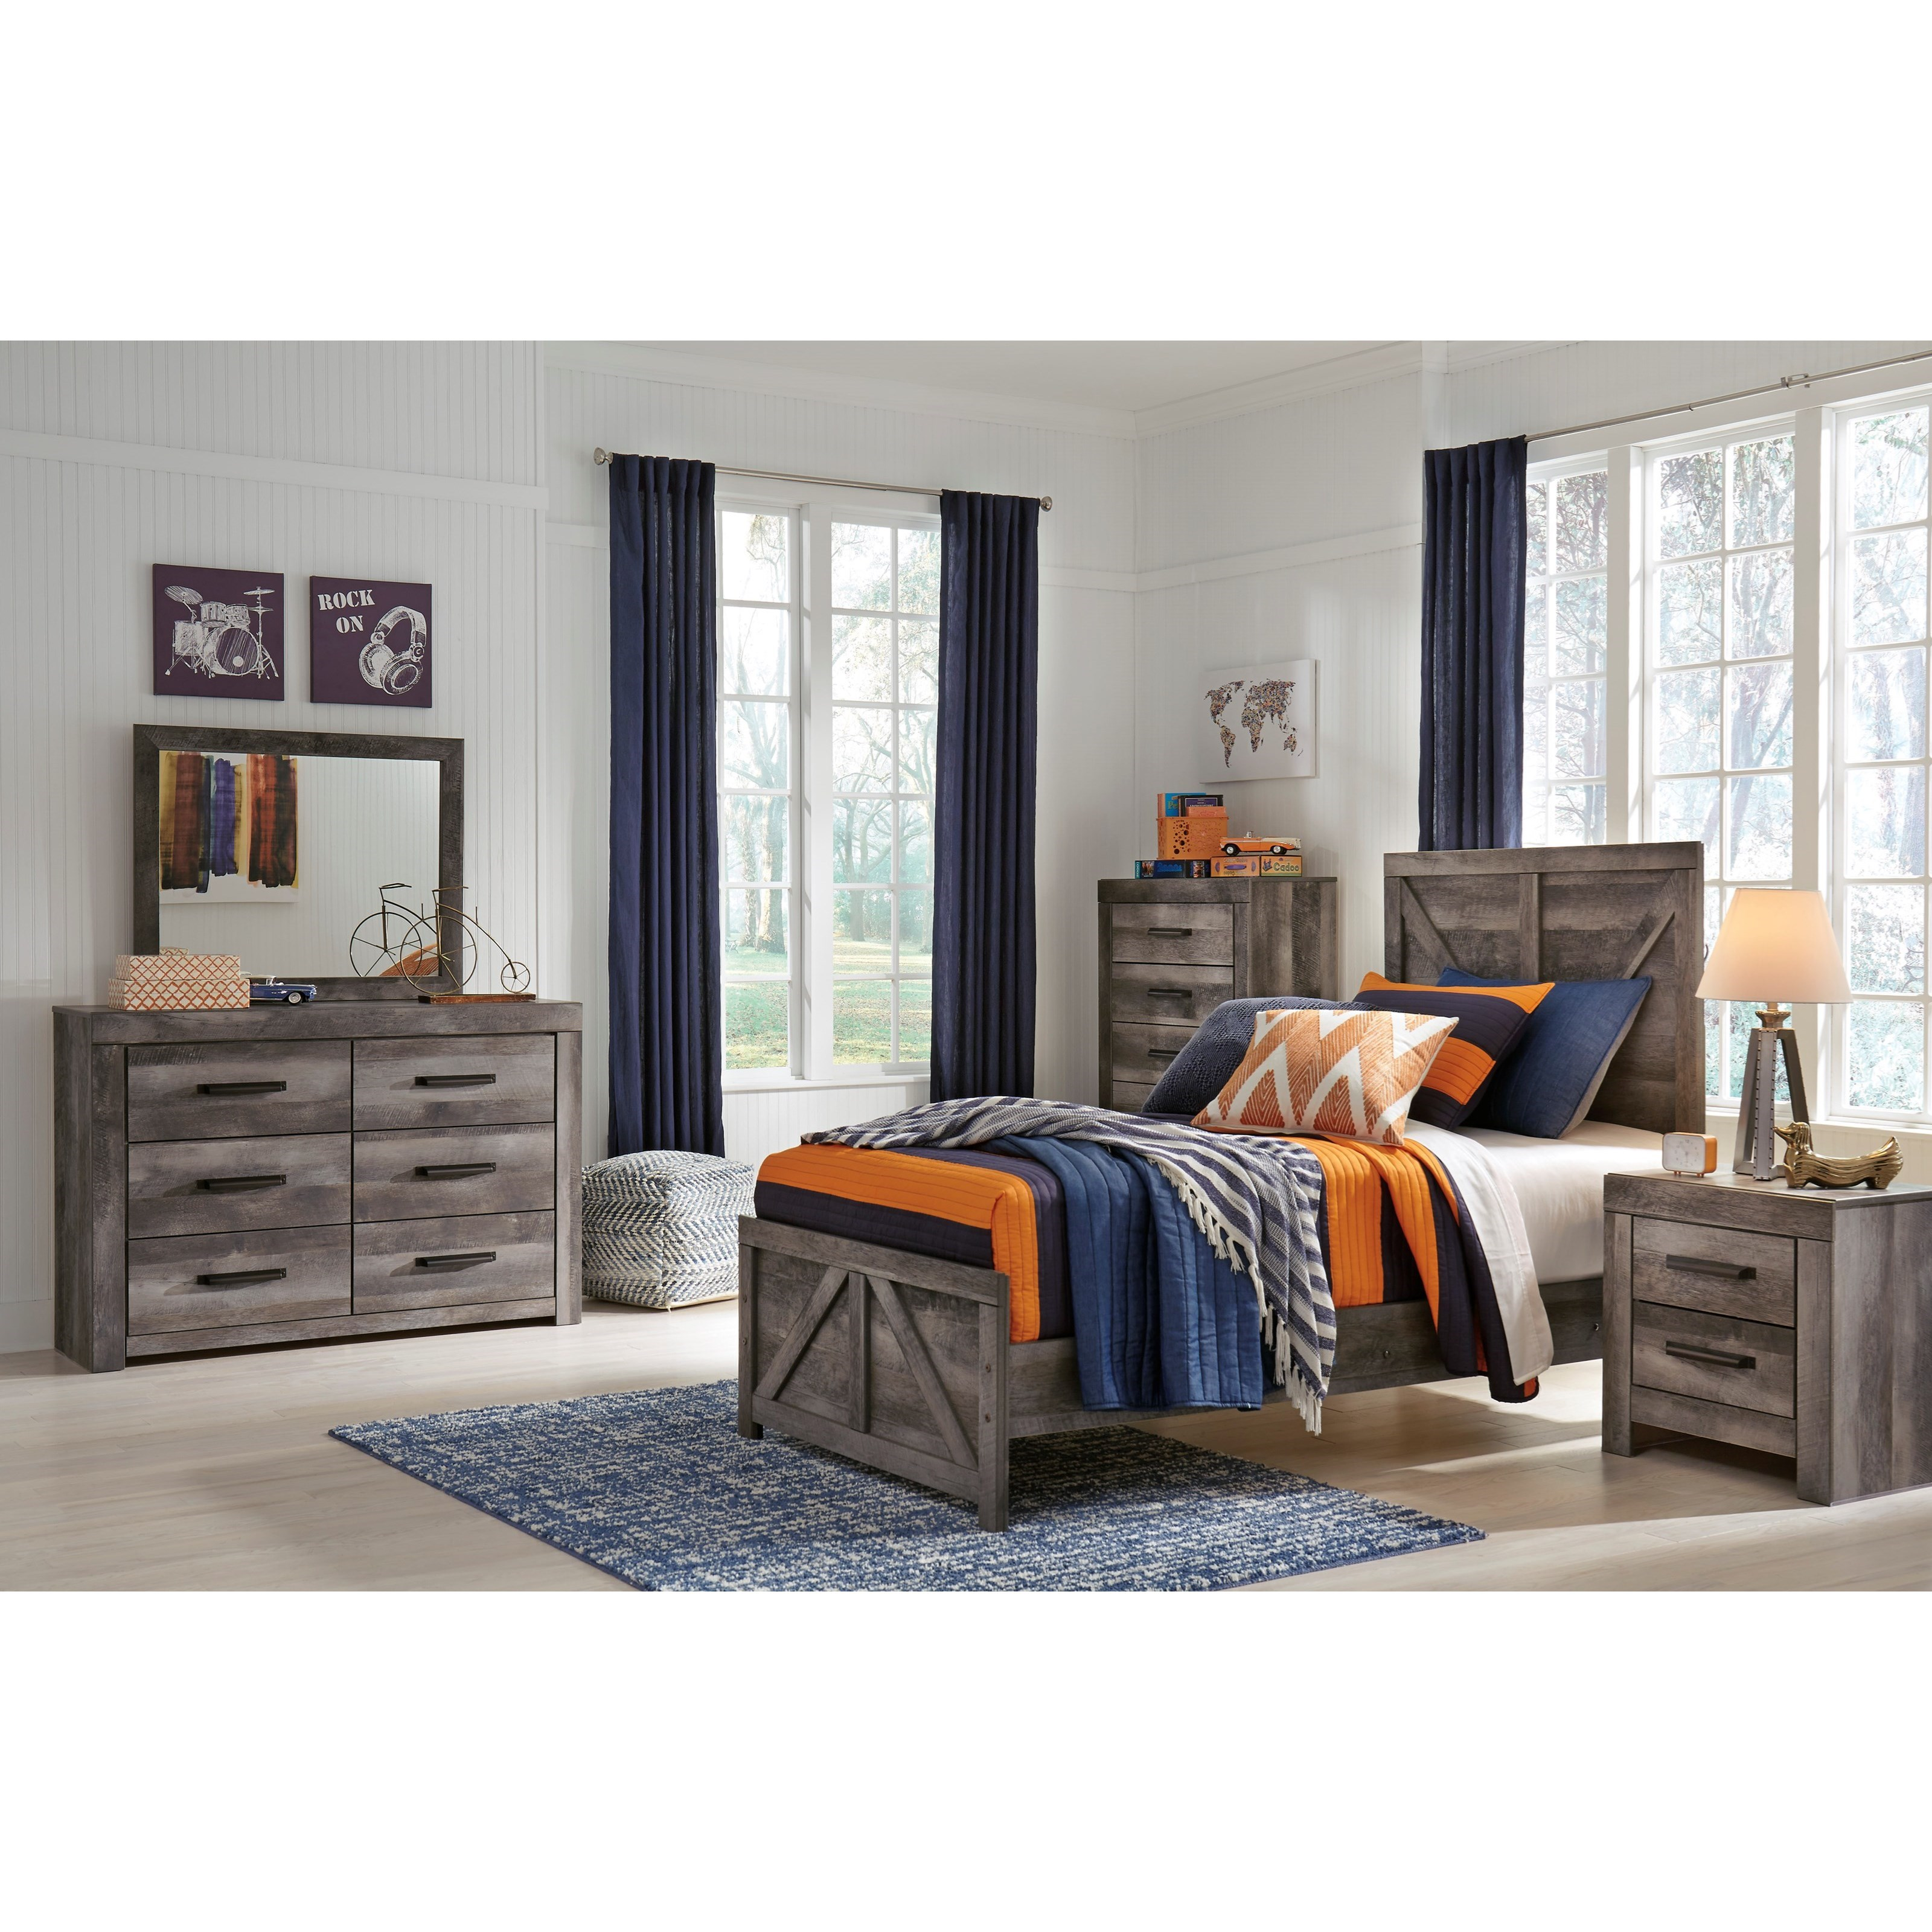 Wynnlow Twin Bedroom Group by Signature Design by Ashley at Household Furniture